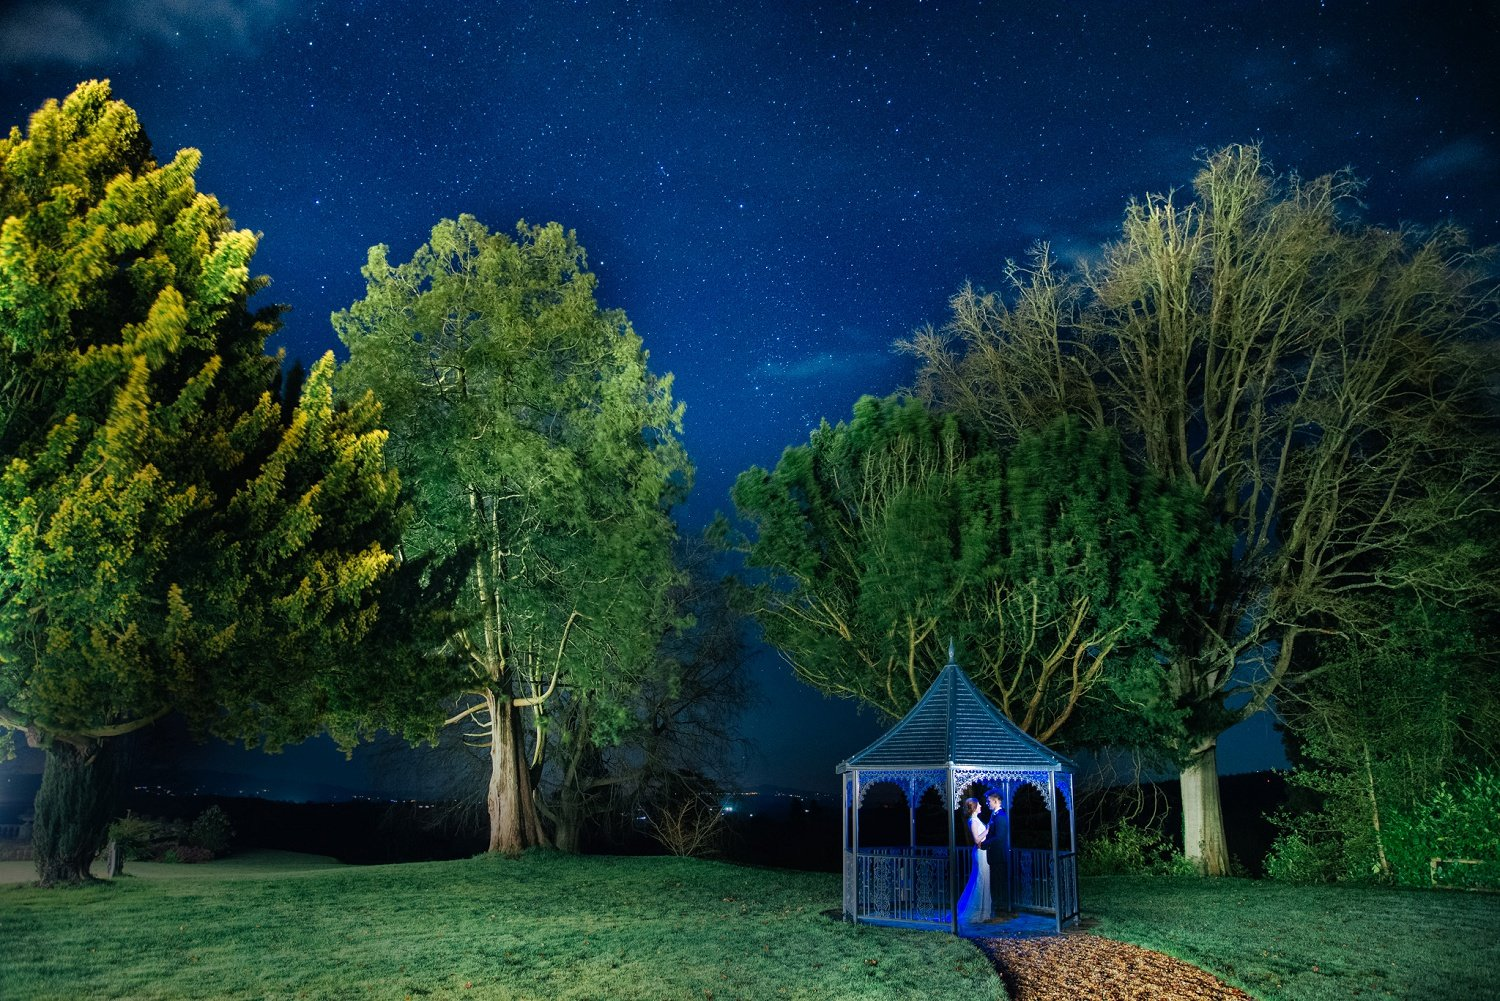 Starry bride and groom portrait by night,the night before New Year's Eve, at Bredenbury Court in Herefordshire